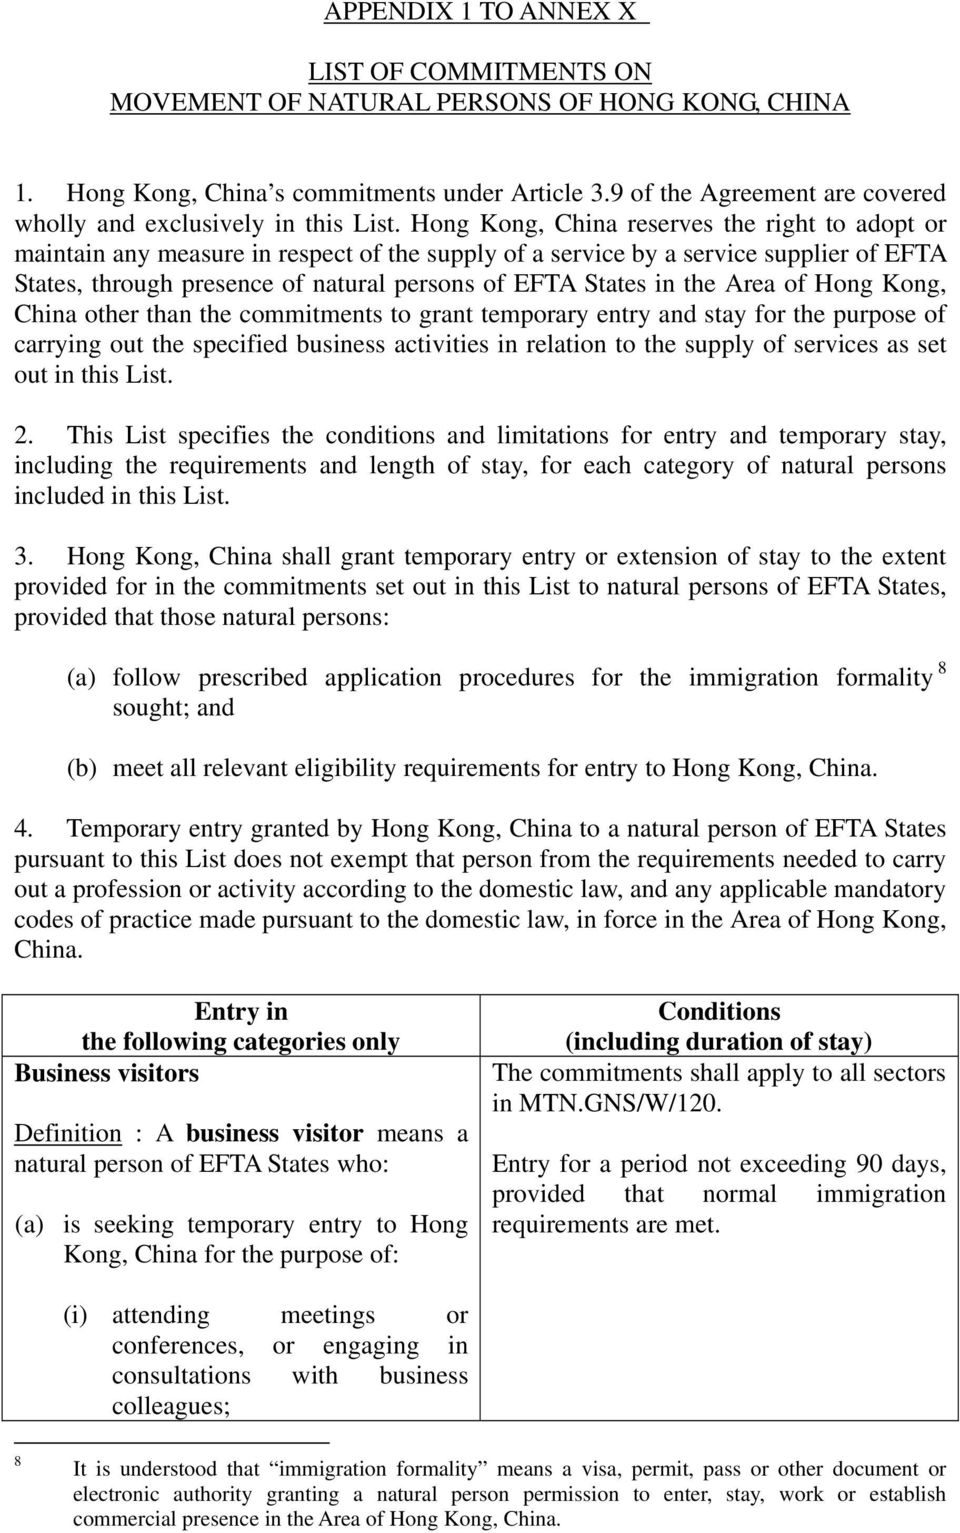 Hong Kong, China reserves the right to adopt or maintain any measure in respect of the supply of a service by a service supplier of EFTA States, through presence of natural persons of EFTA States in